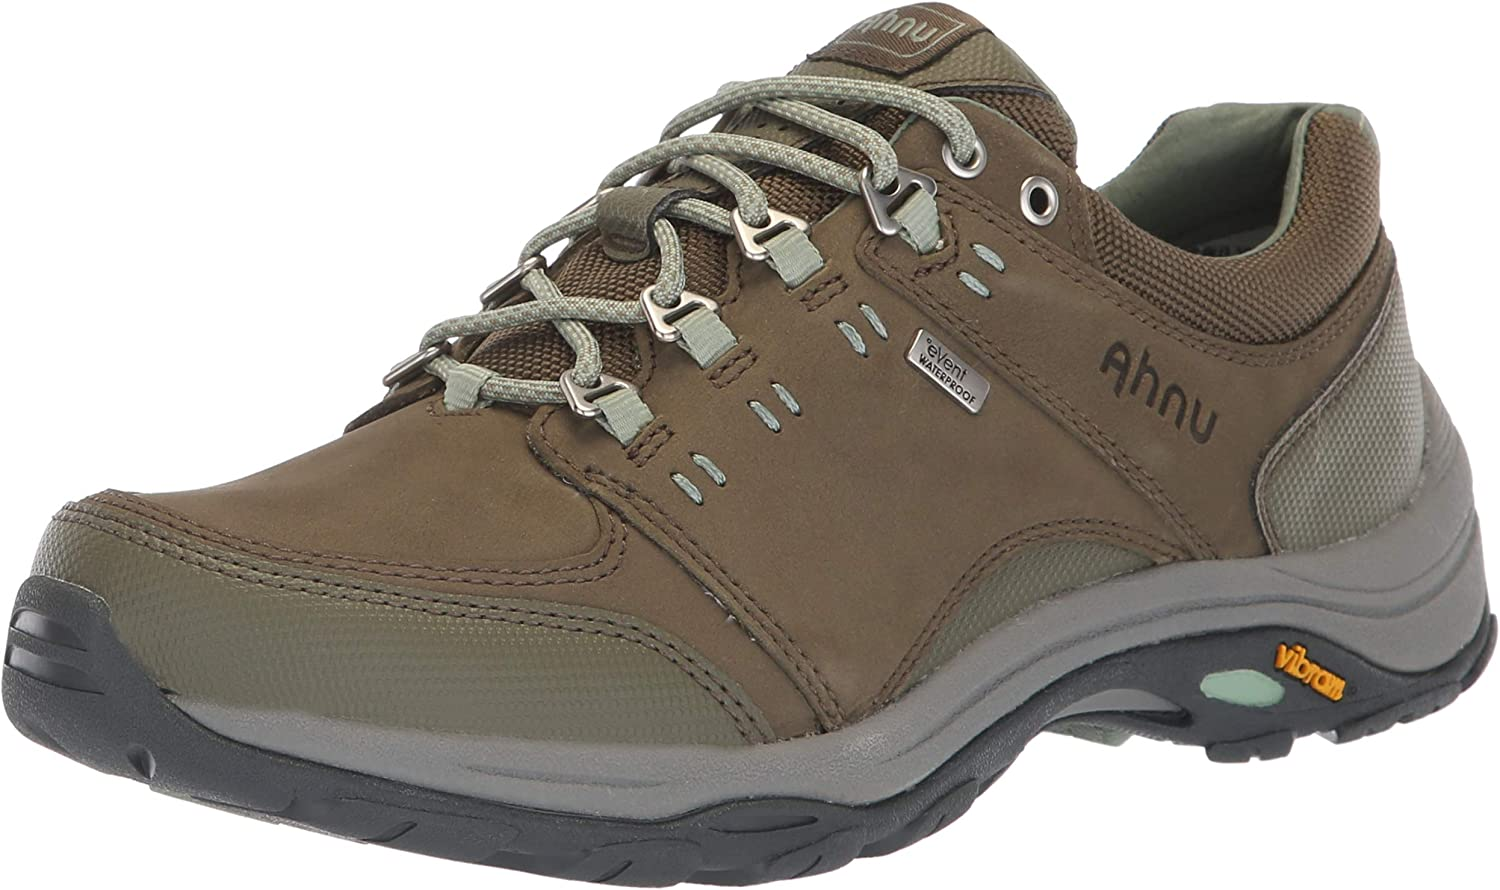 Image of Ahnu Women's W Montara Iii Event Hiking Shoe Hiking Shoes